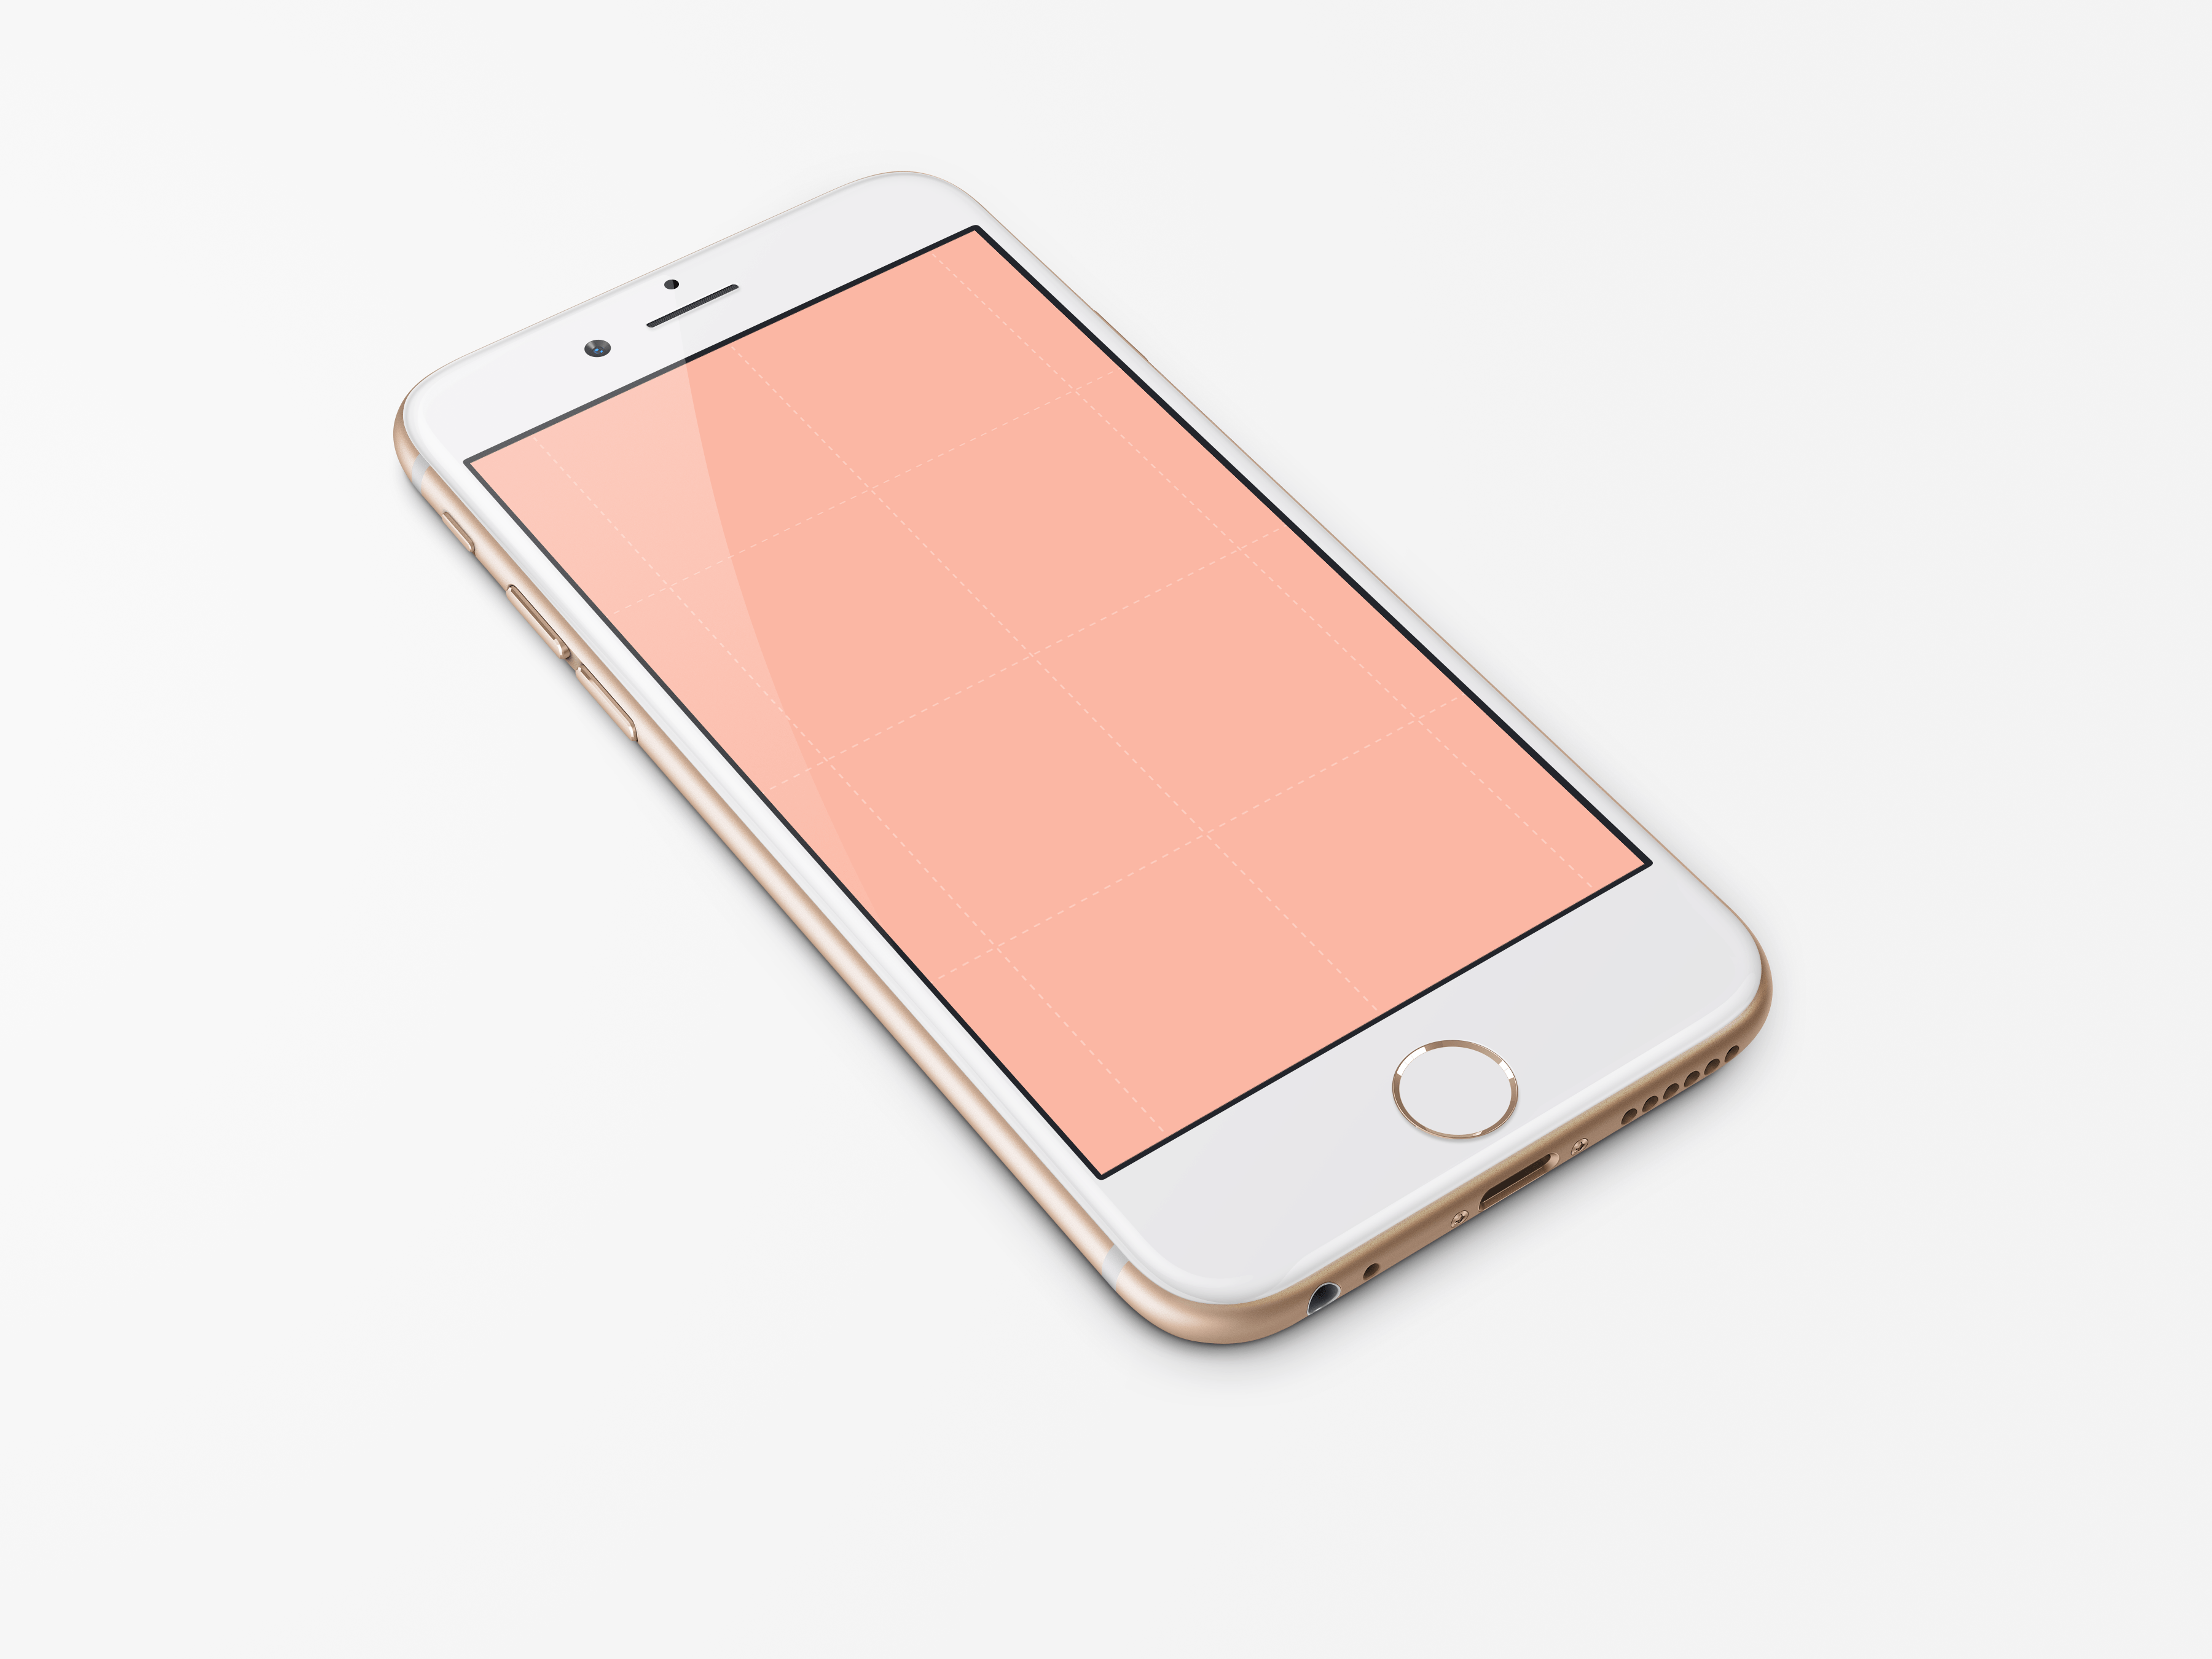 Iphone 6 clipart template clipart free download Illustrator Iphone Template. free vector ios9 gui template for ... clipart free download